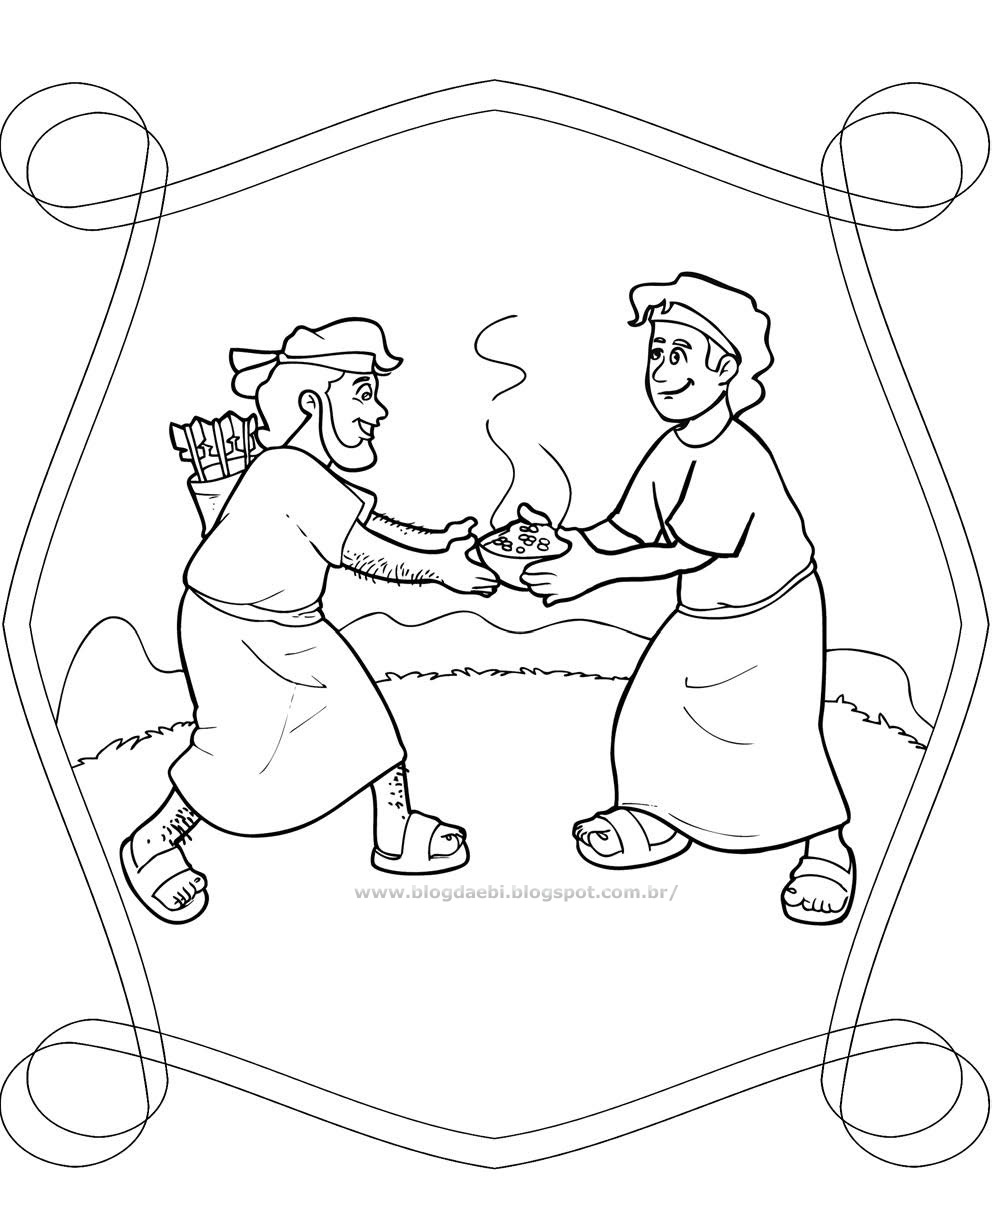 jacob meets esau coloring pages - photo#27